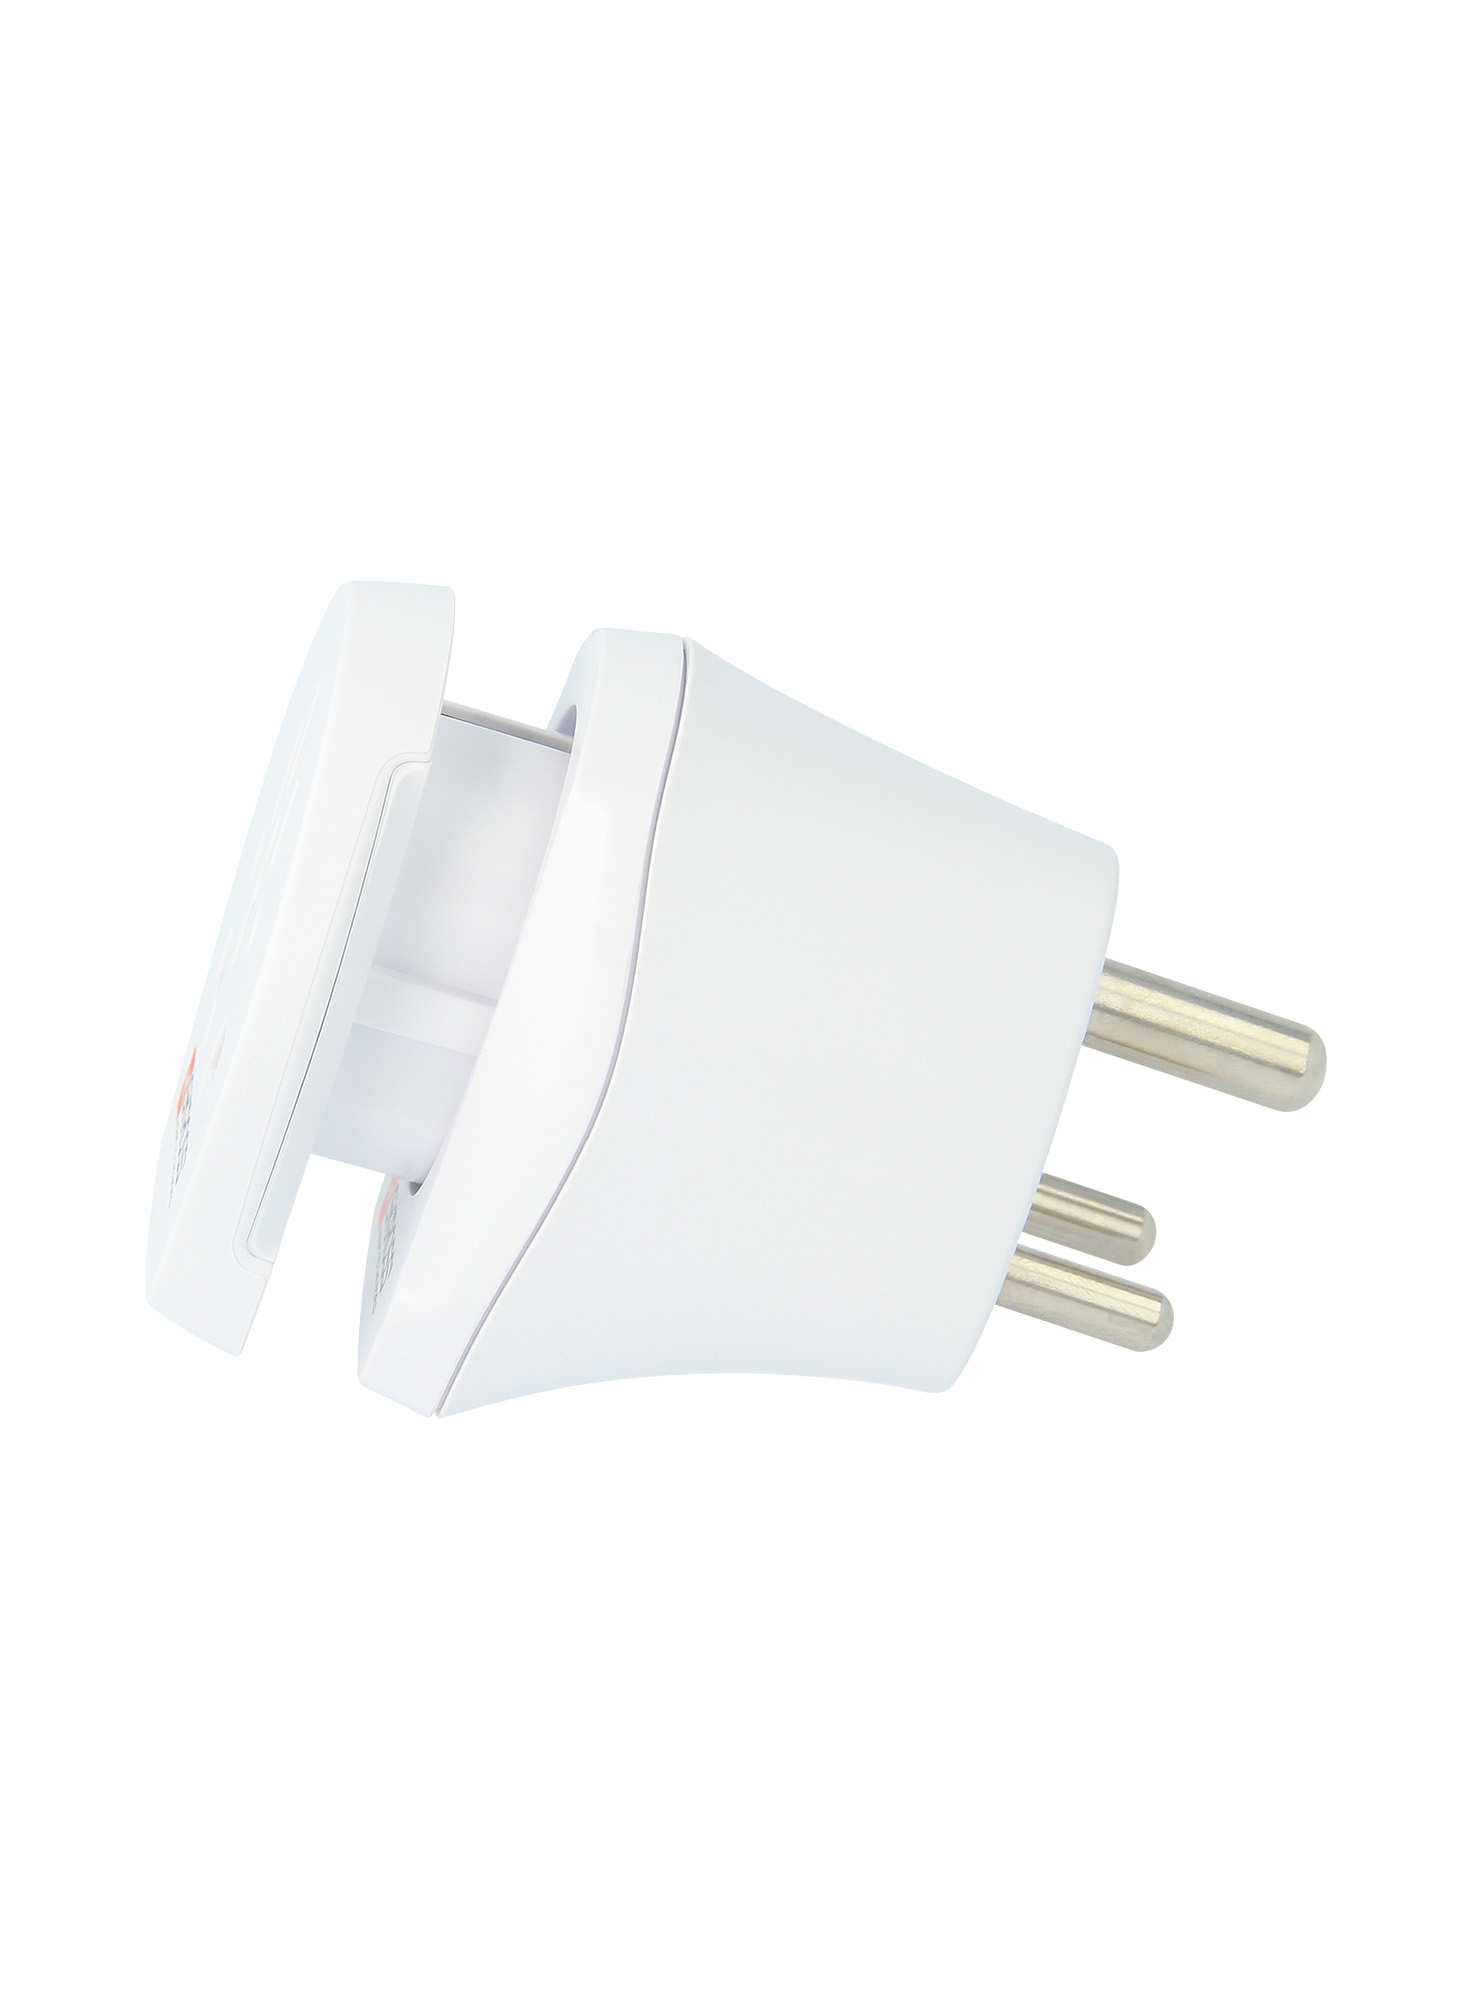 Adapter Skross Combo World to India - zdjęcie nr. 3